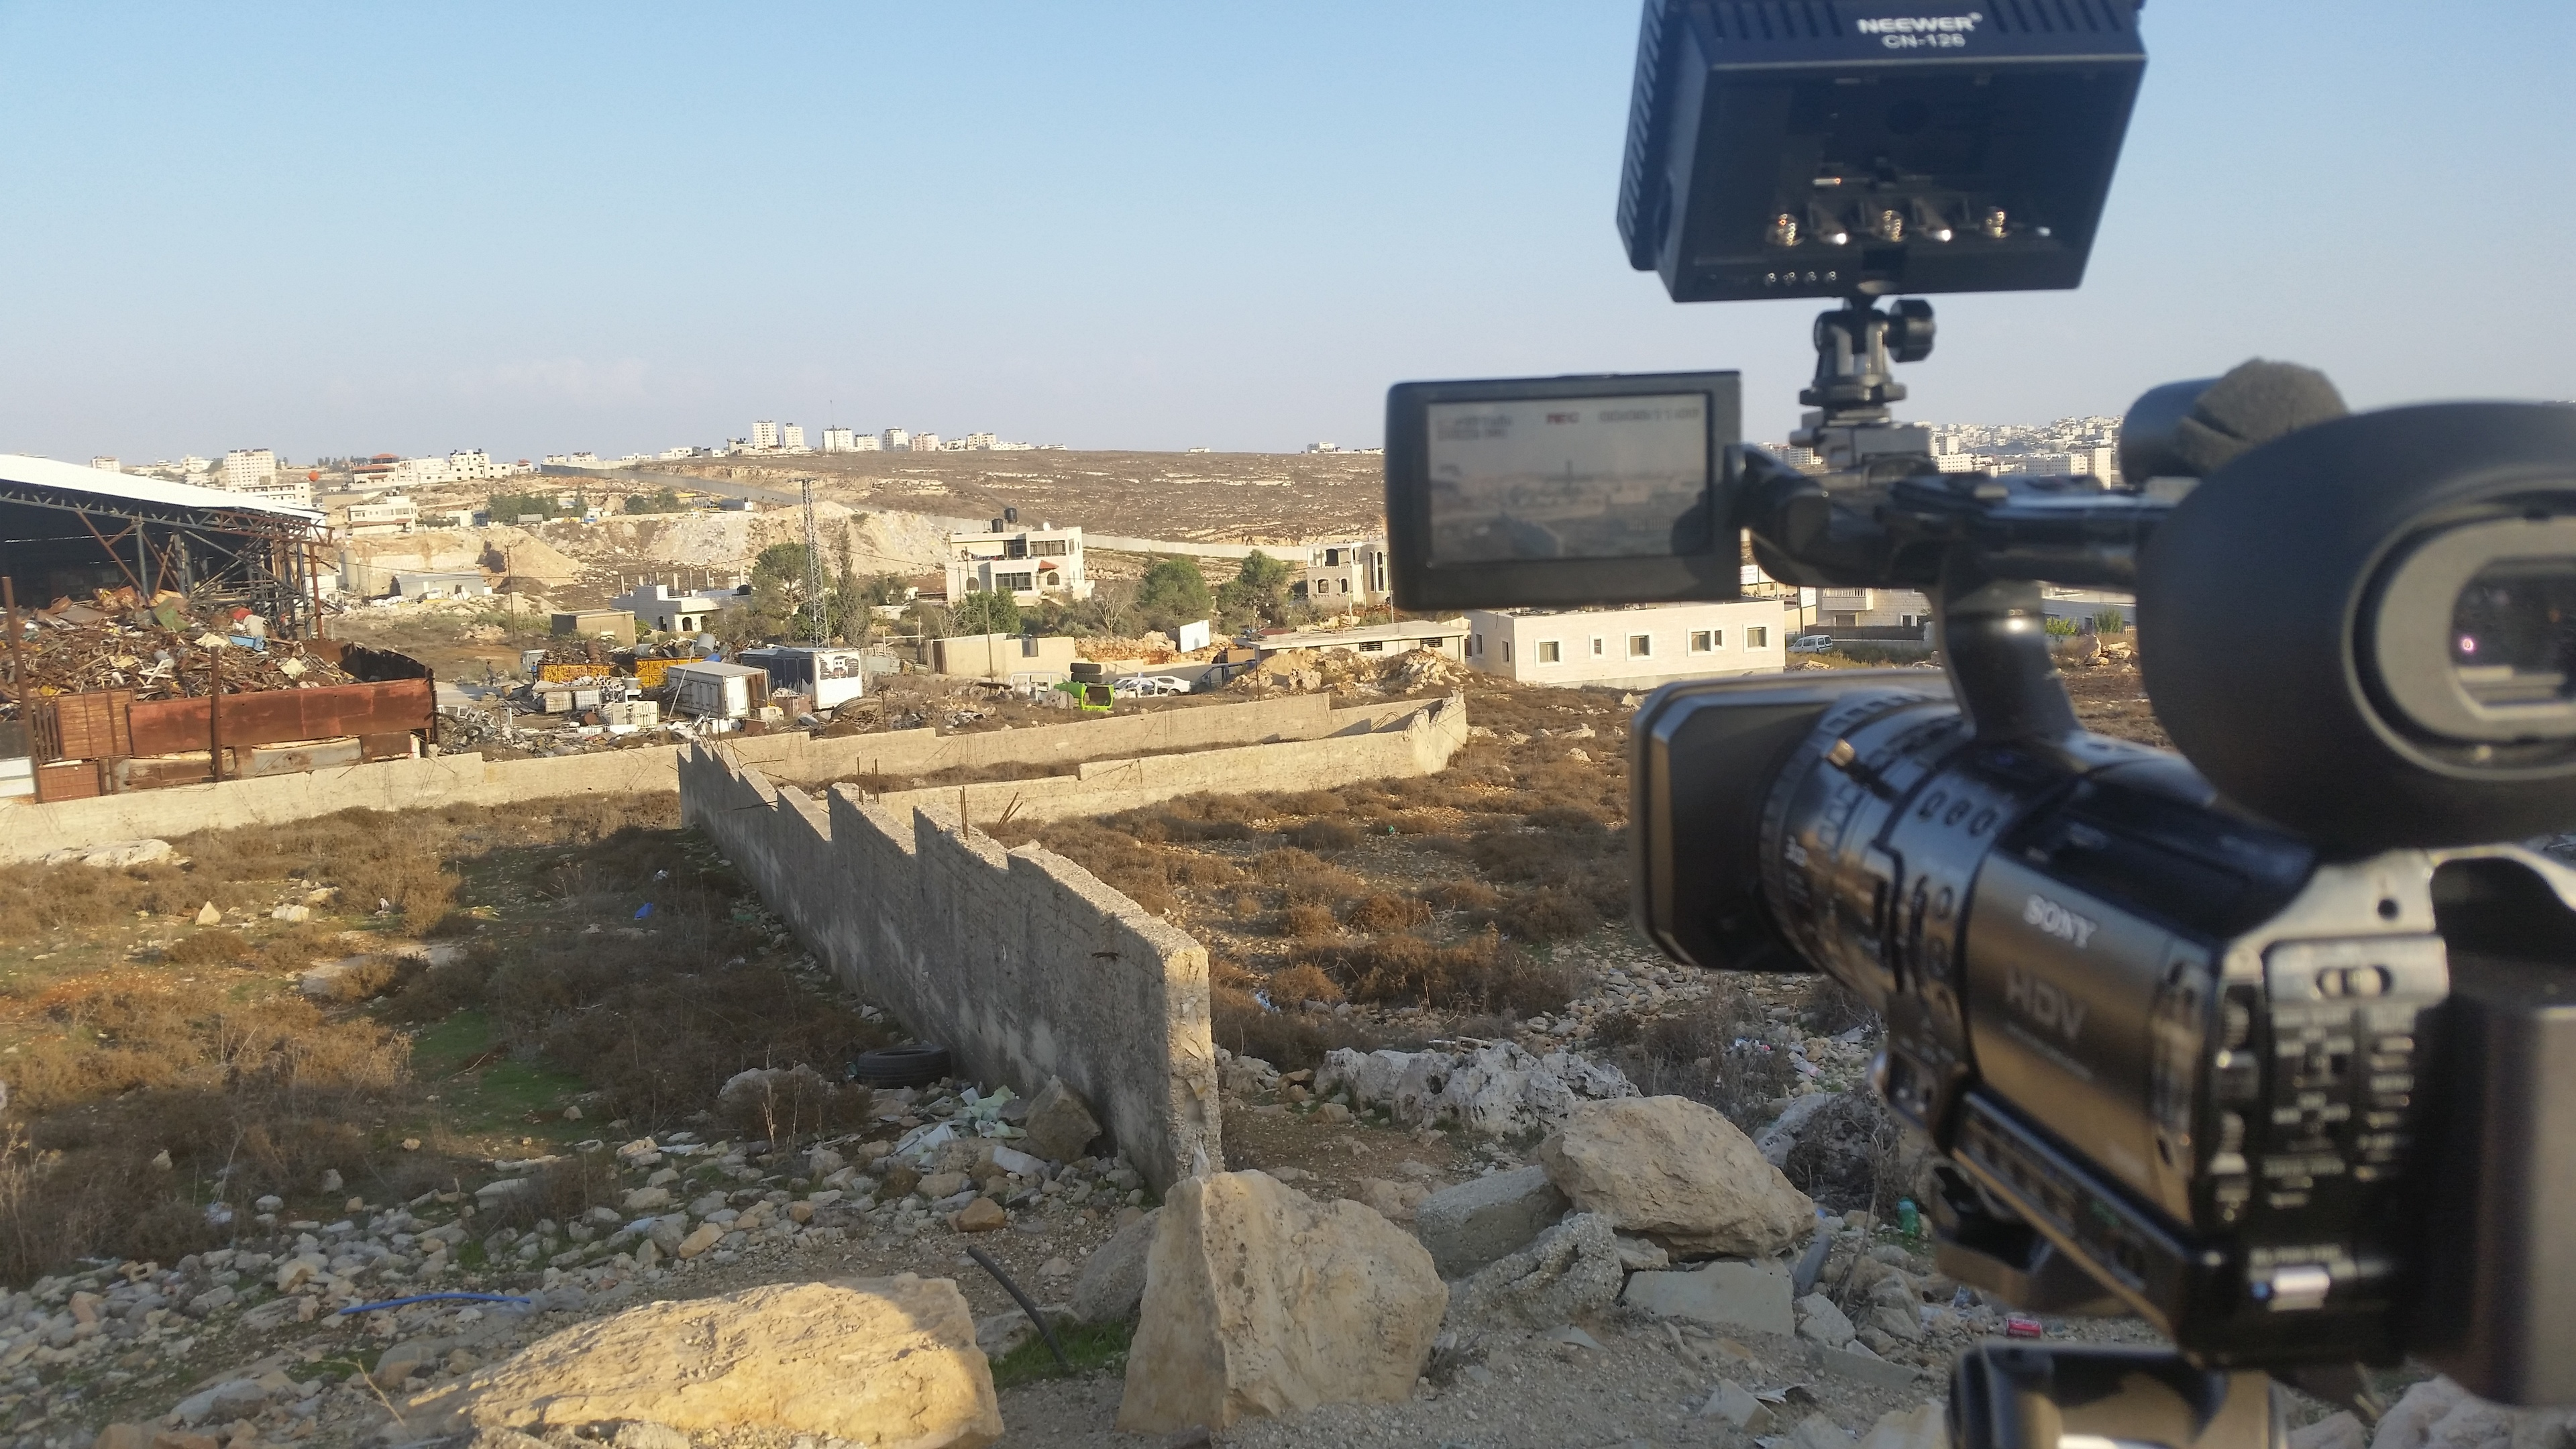 Filming the apartheid wall in Ramallah